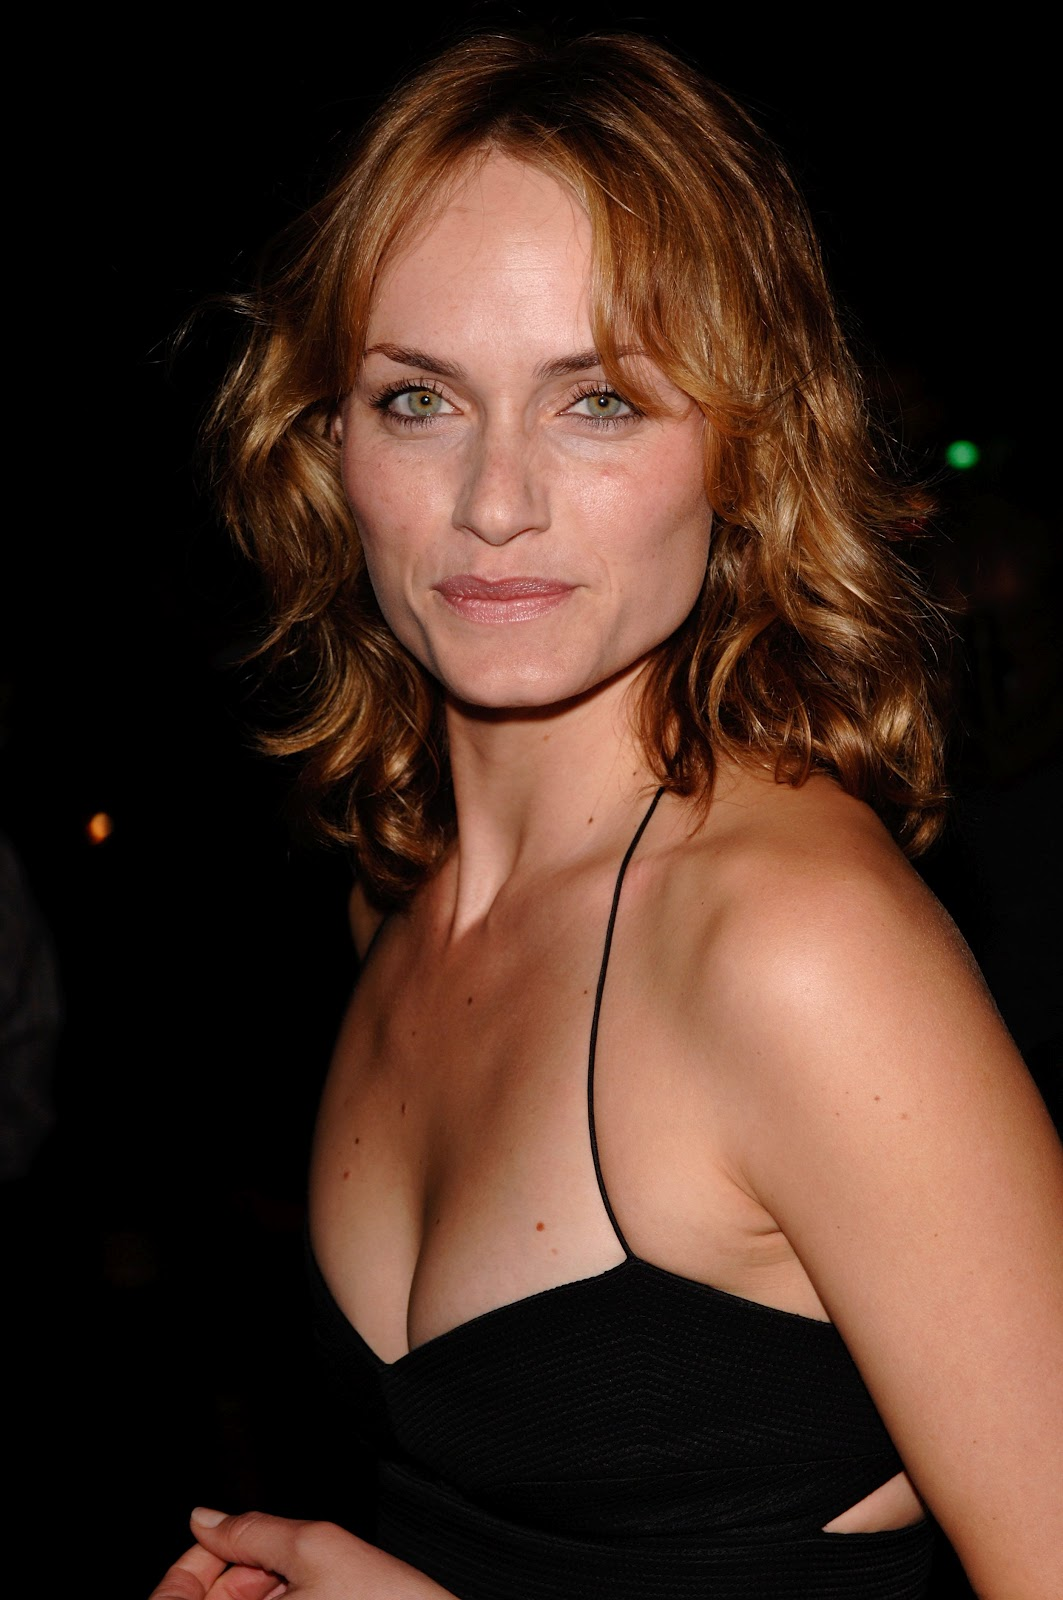 Cleavage Amber Valletta nude photos 2019